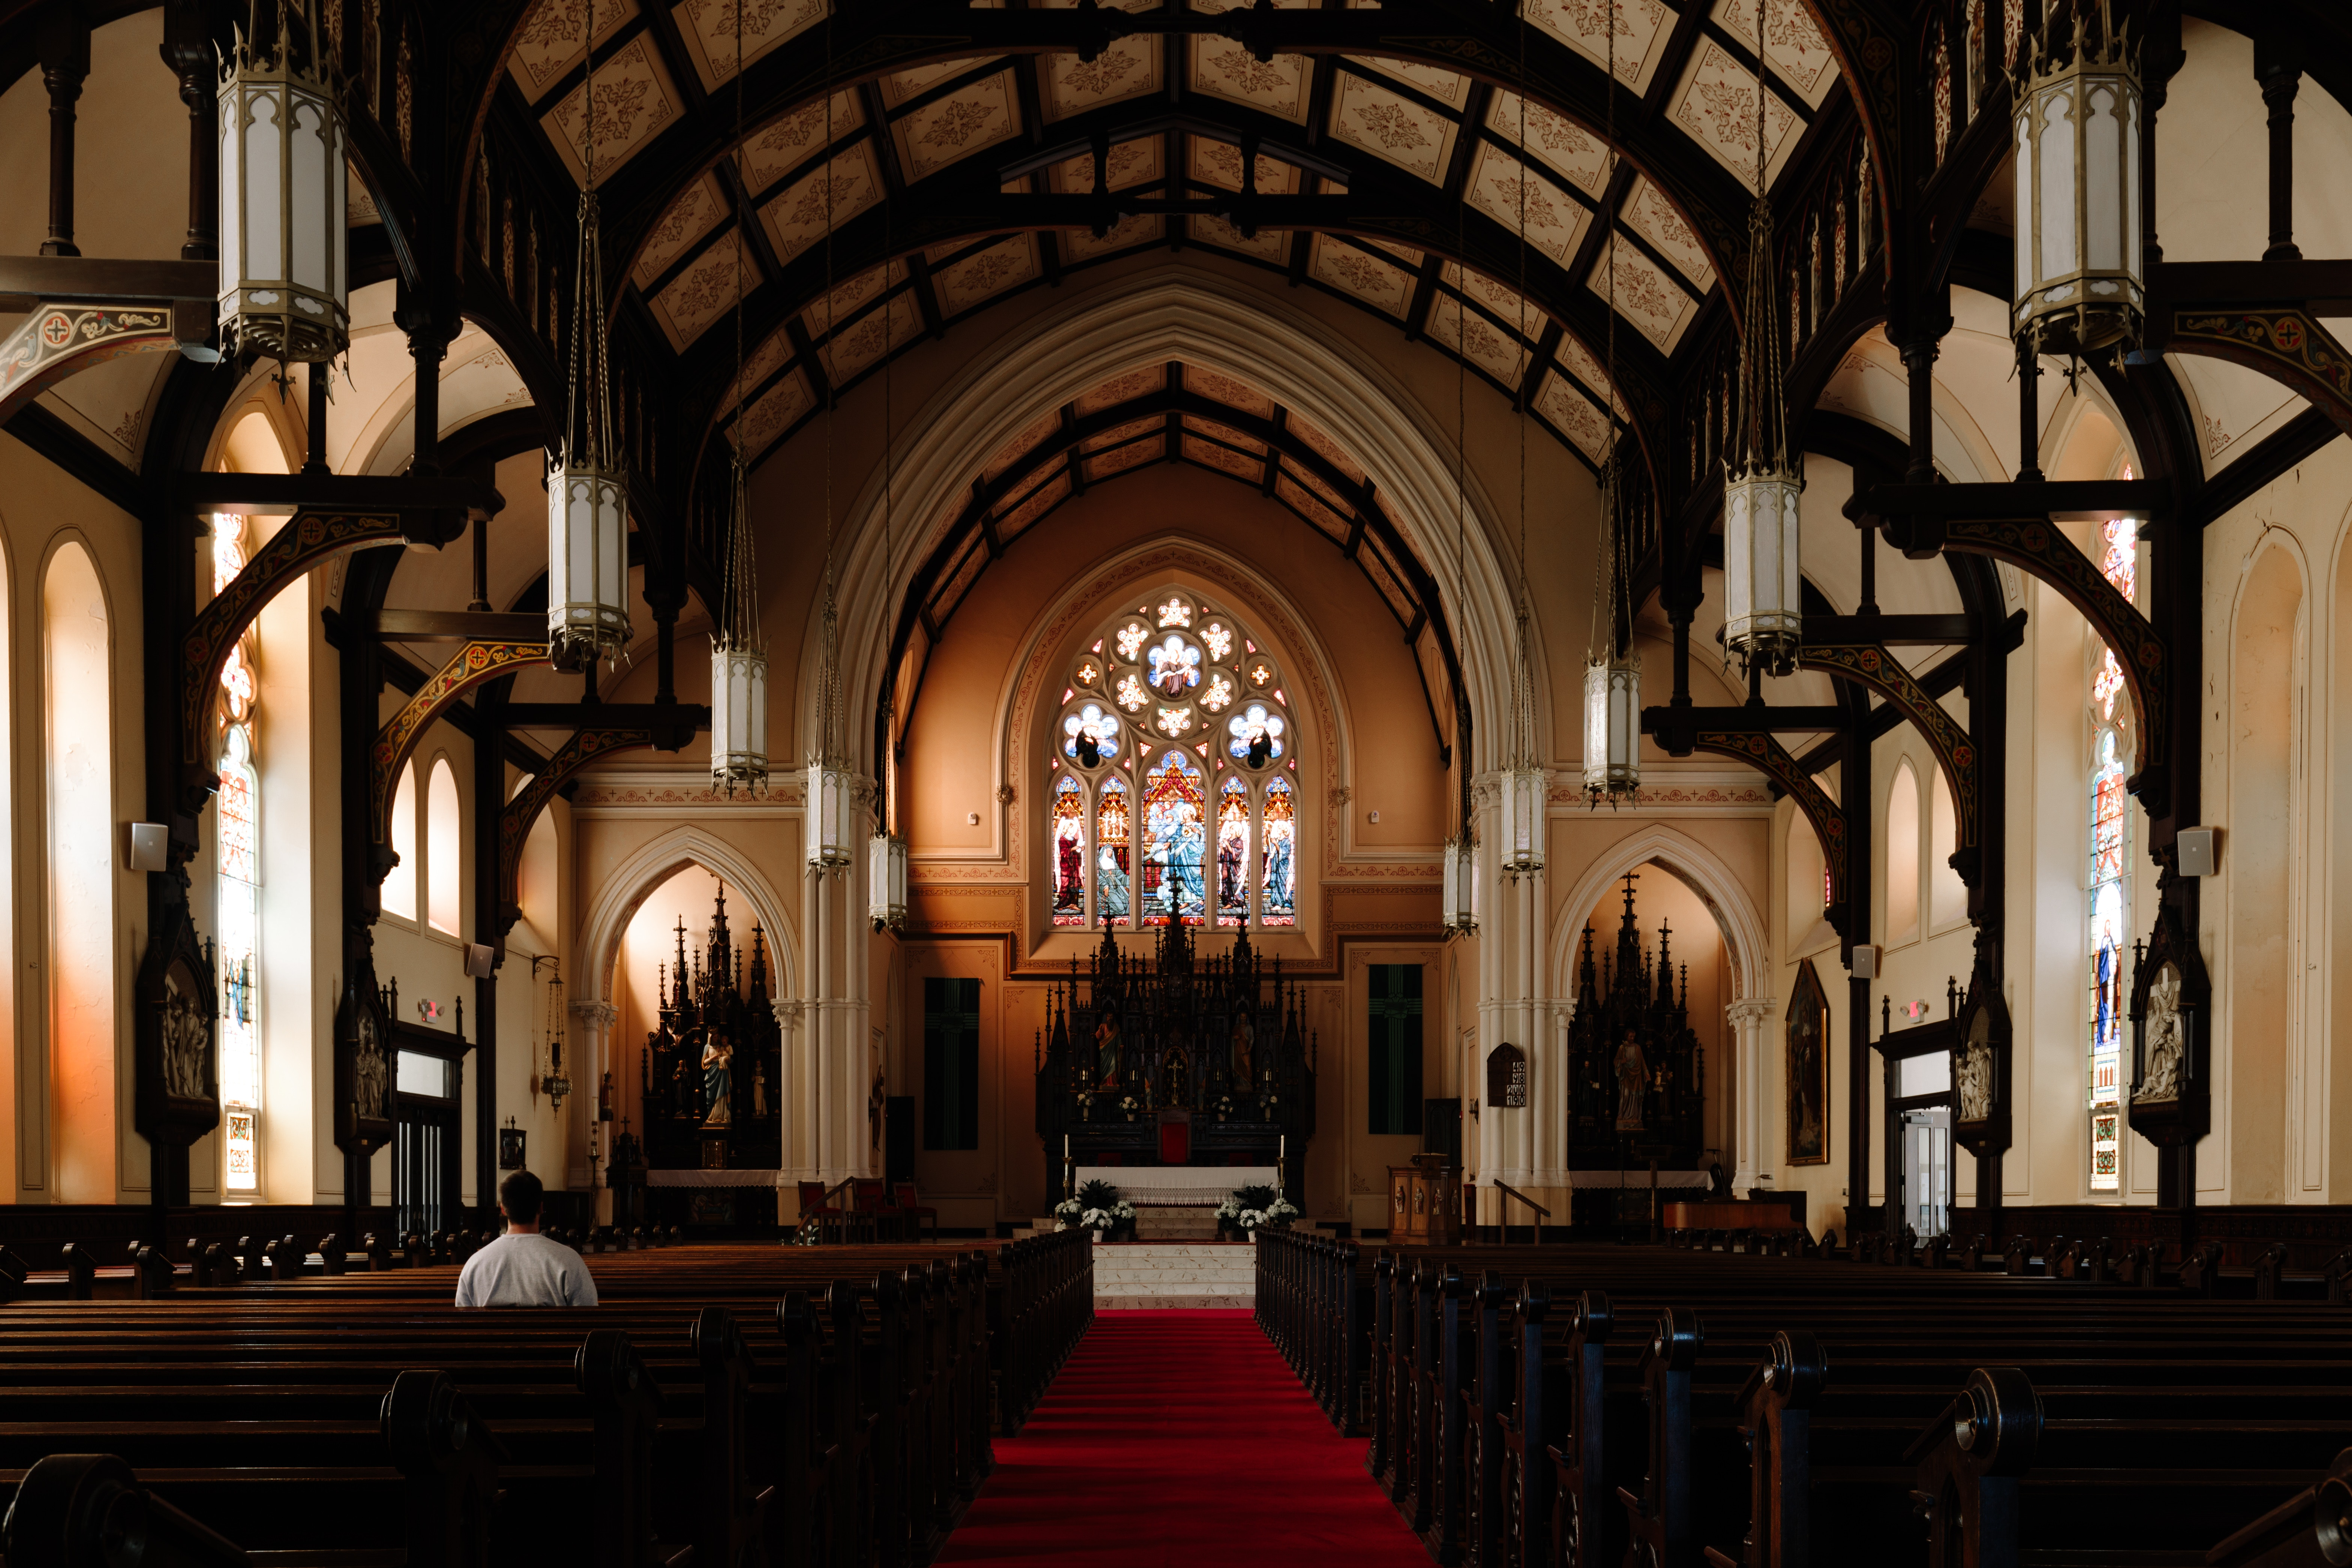 How do we restore trust in our church after the sex abuse crisis